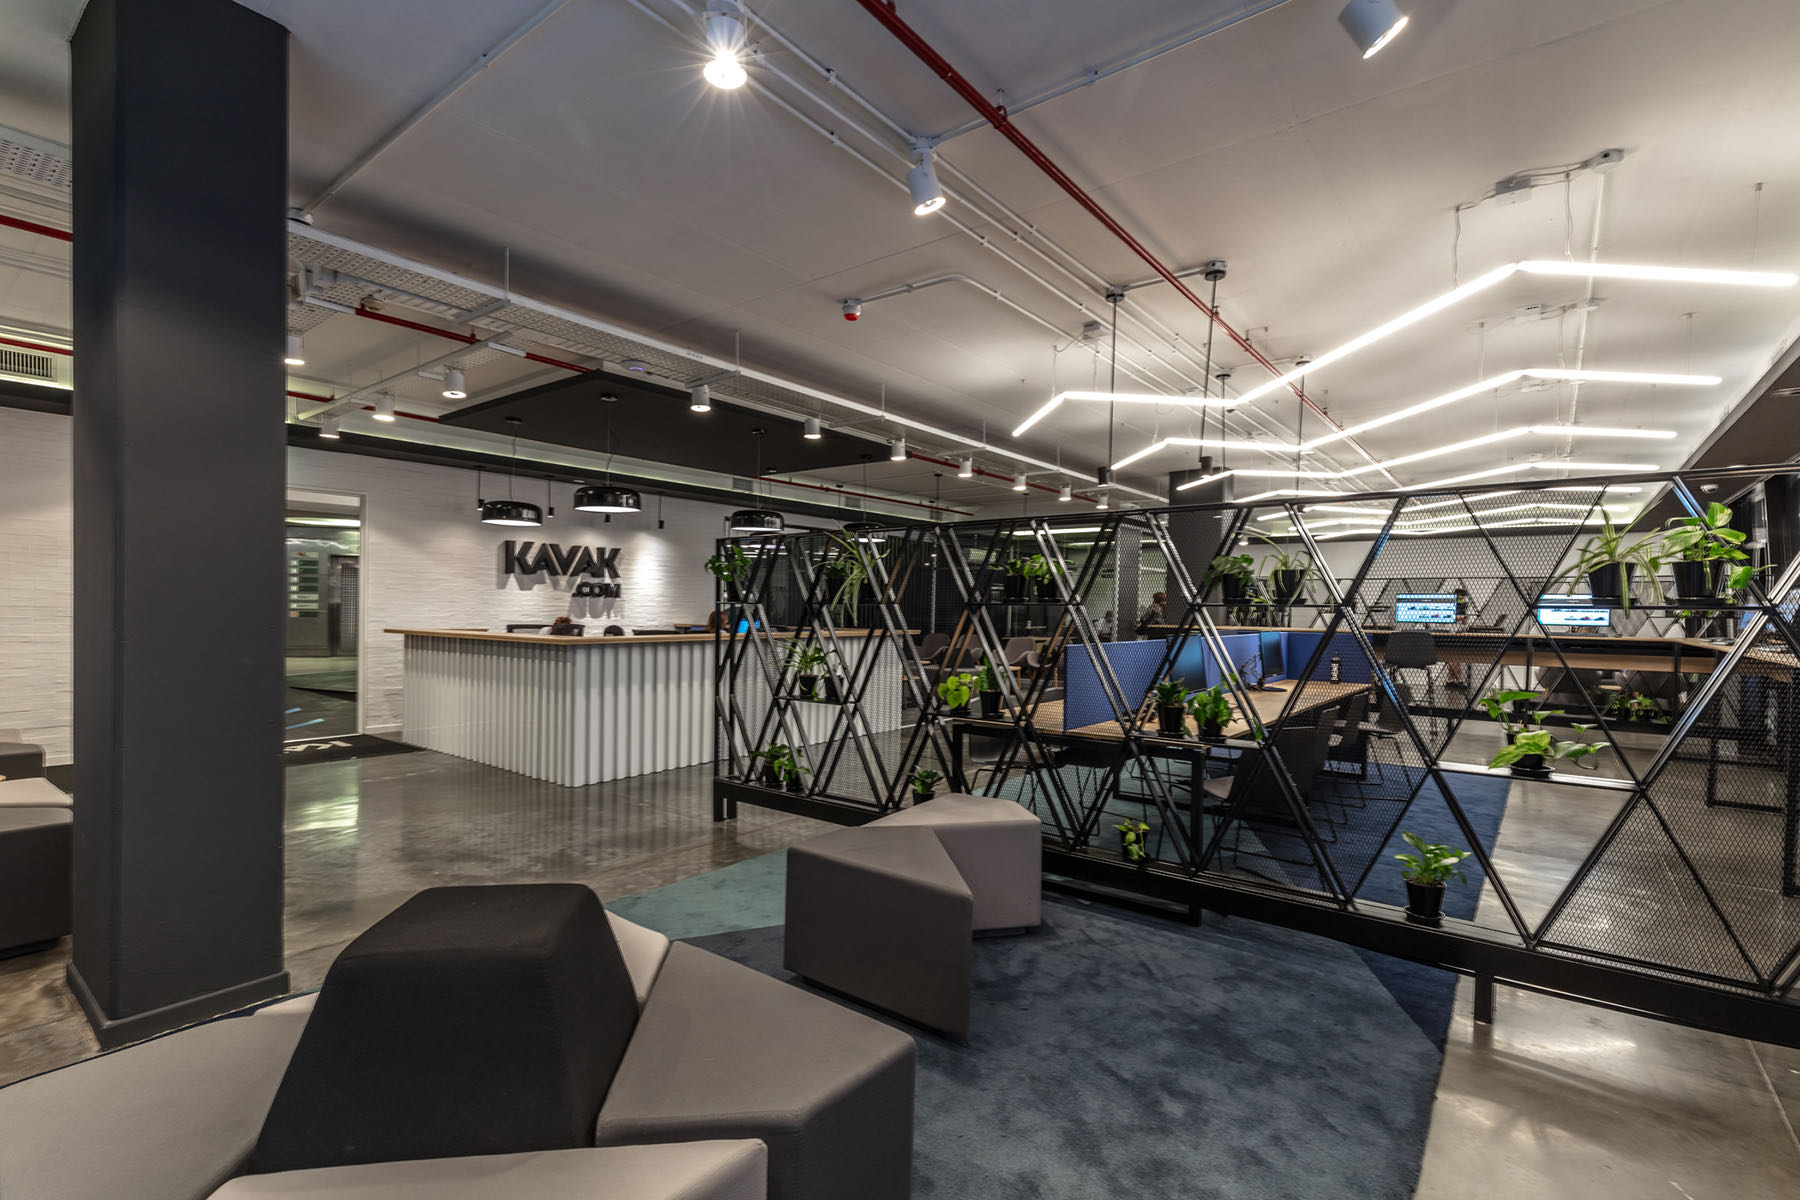 kavak-buenos-aires-office-7